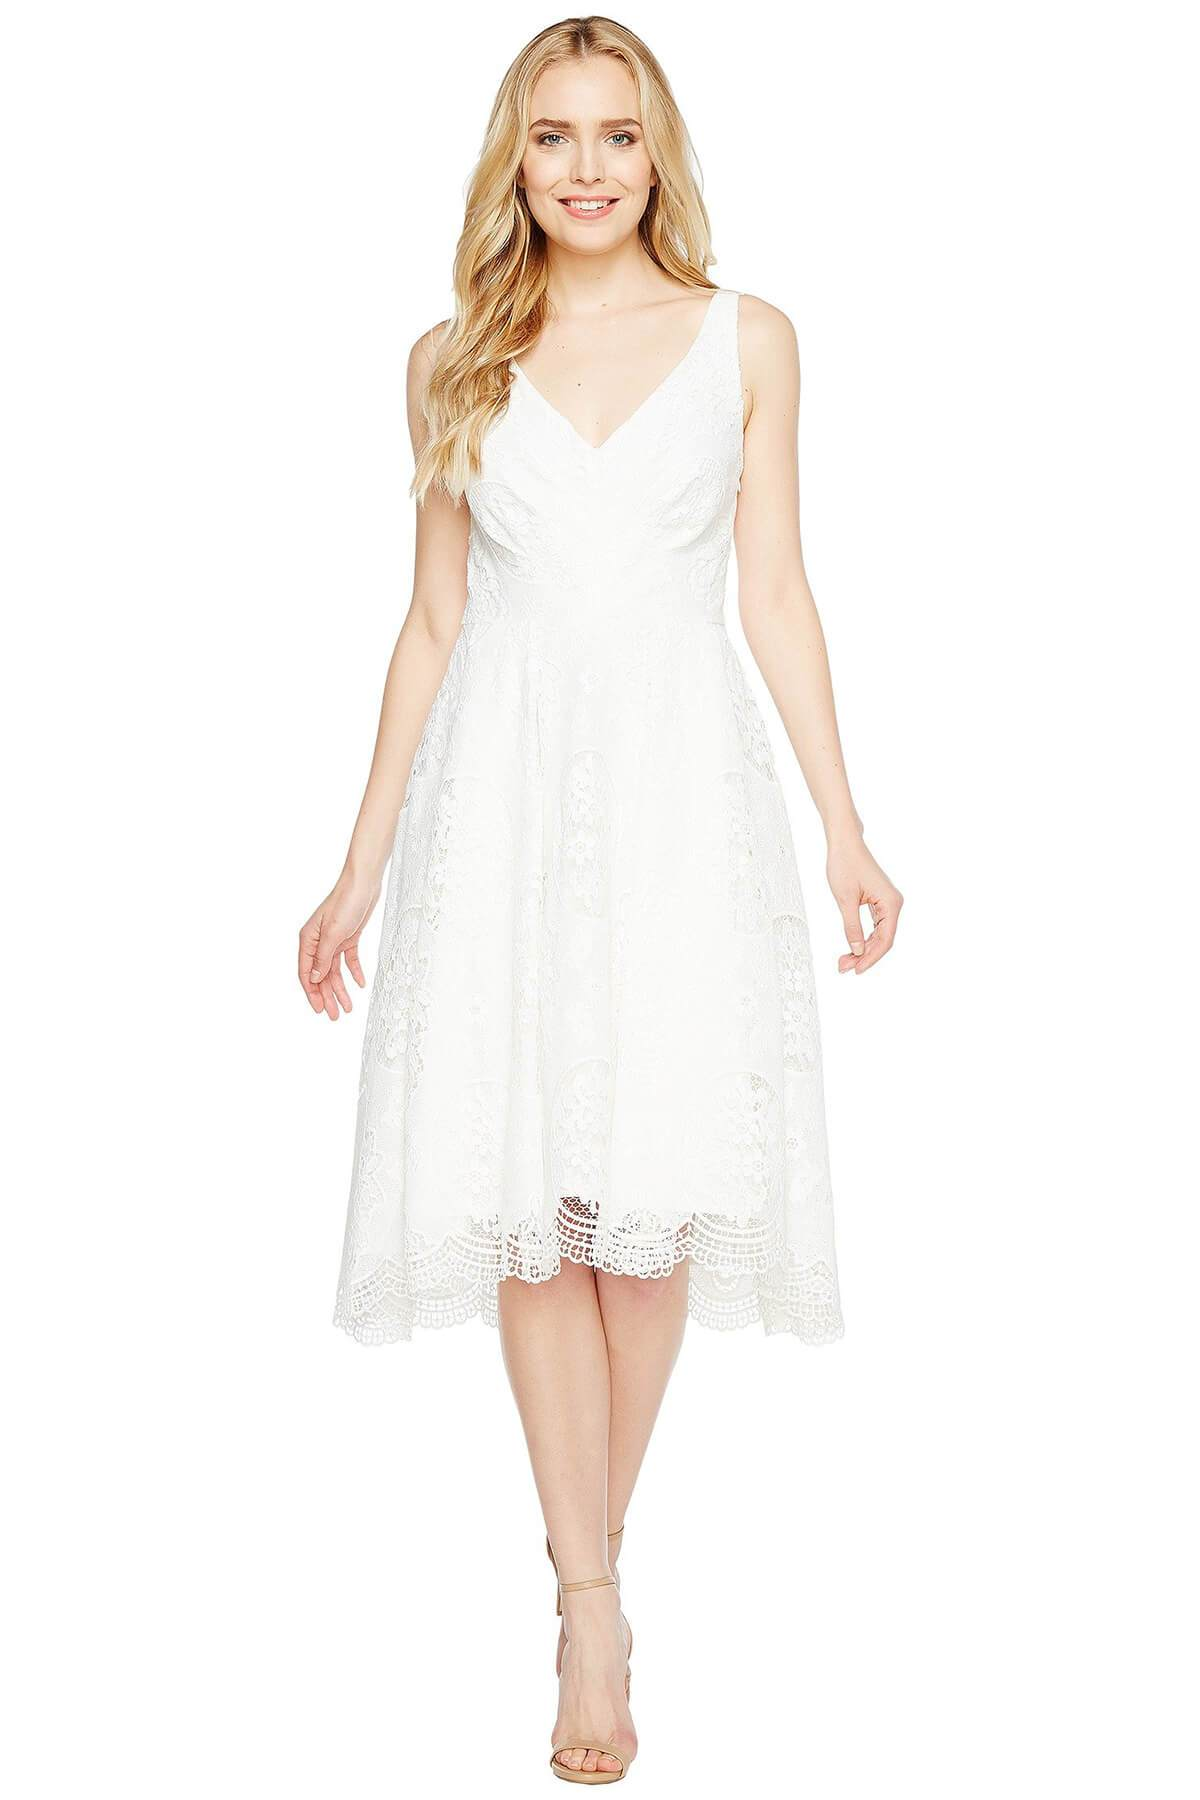 Eva Franco Dress Charlotte Dress - White